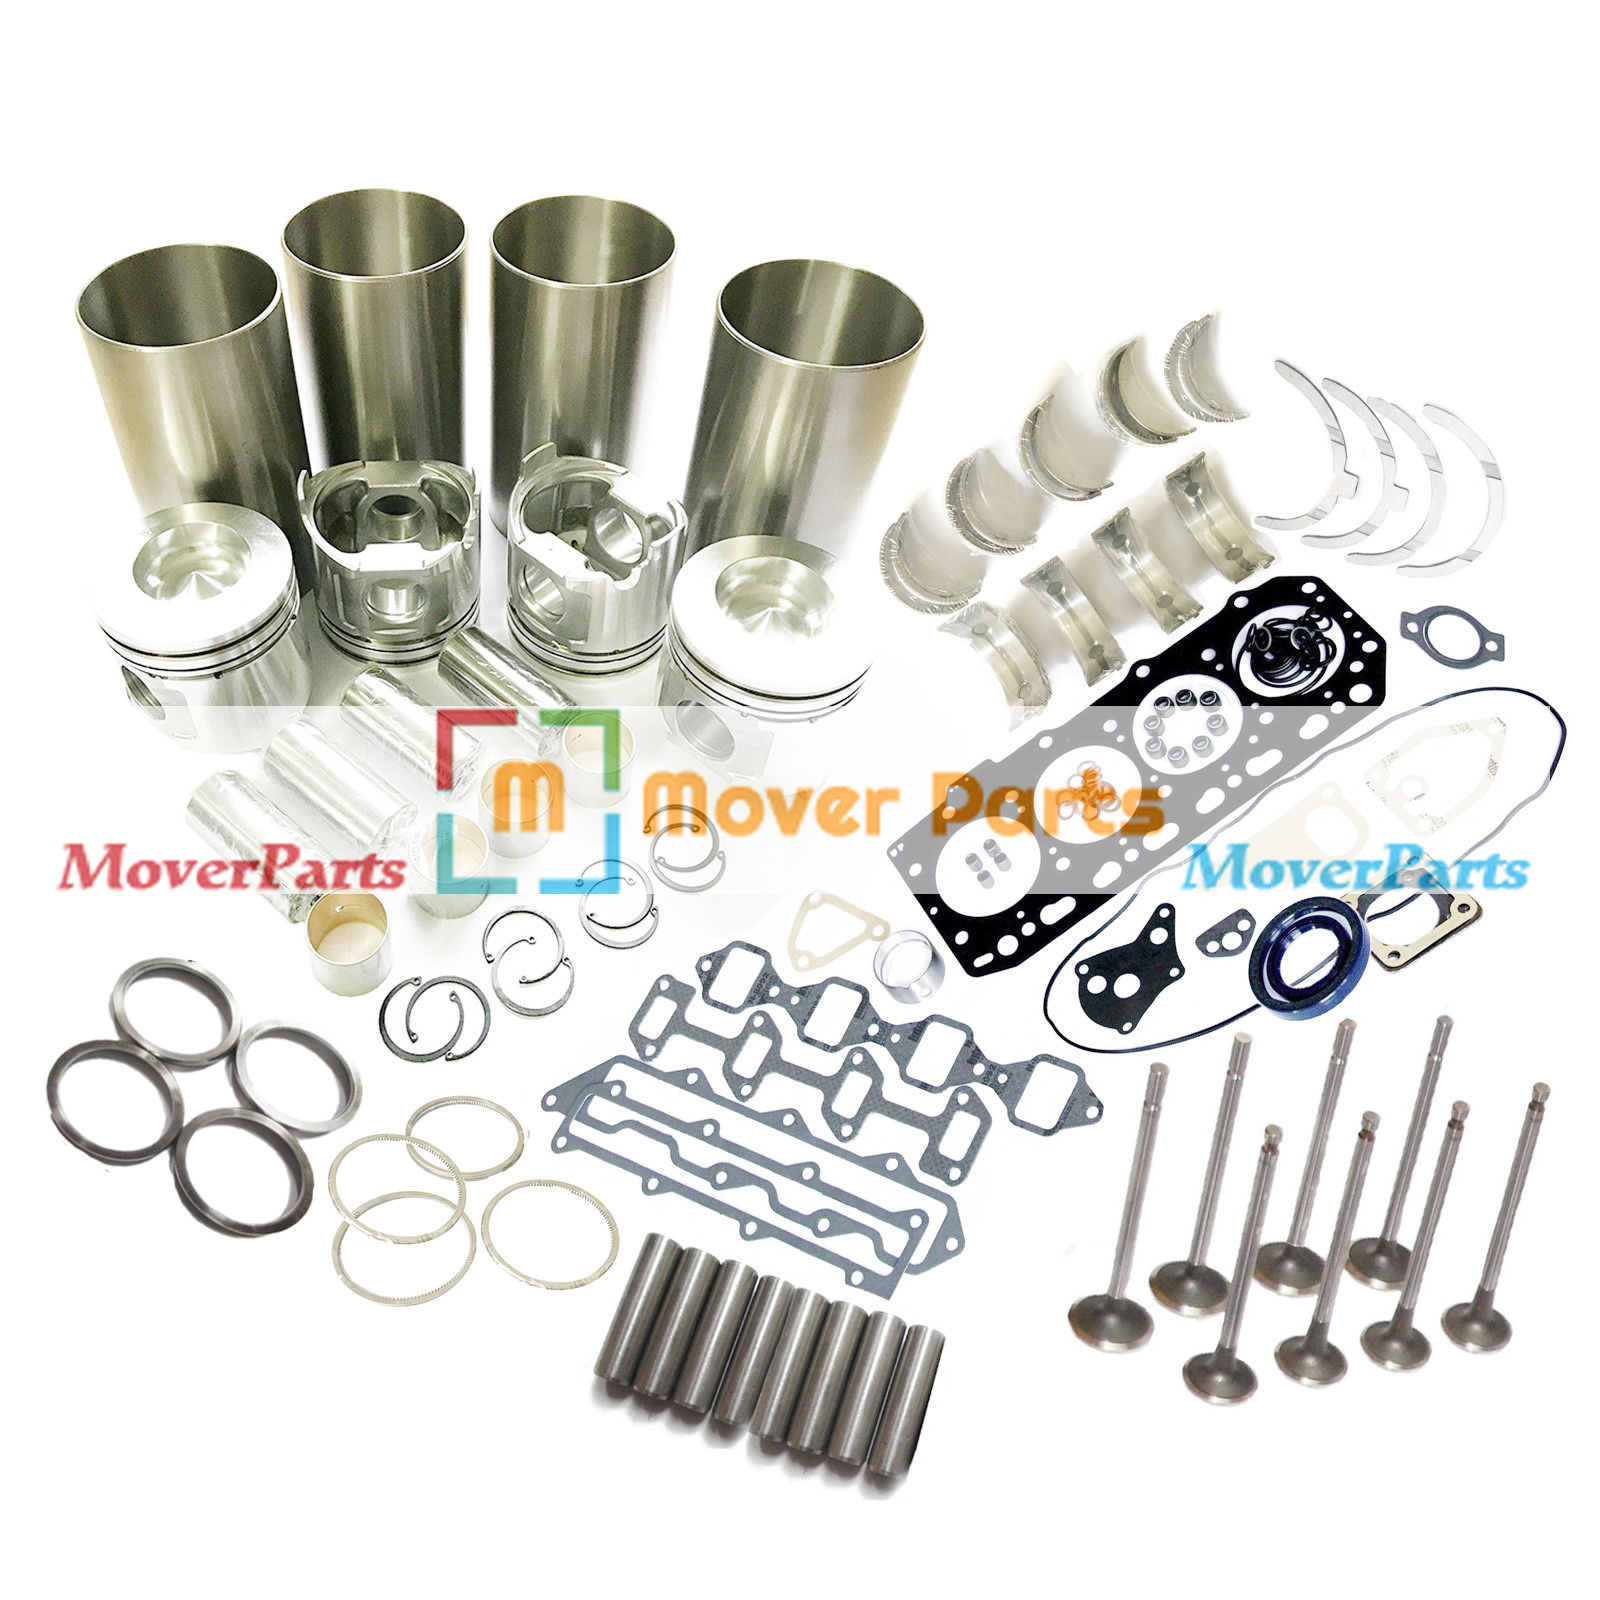 Details about 4TNV88 4D88-6 4D88E Overhaul Rebuild Kit for Yanmar Komatsu  Engine Parts